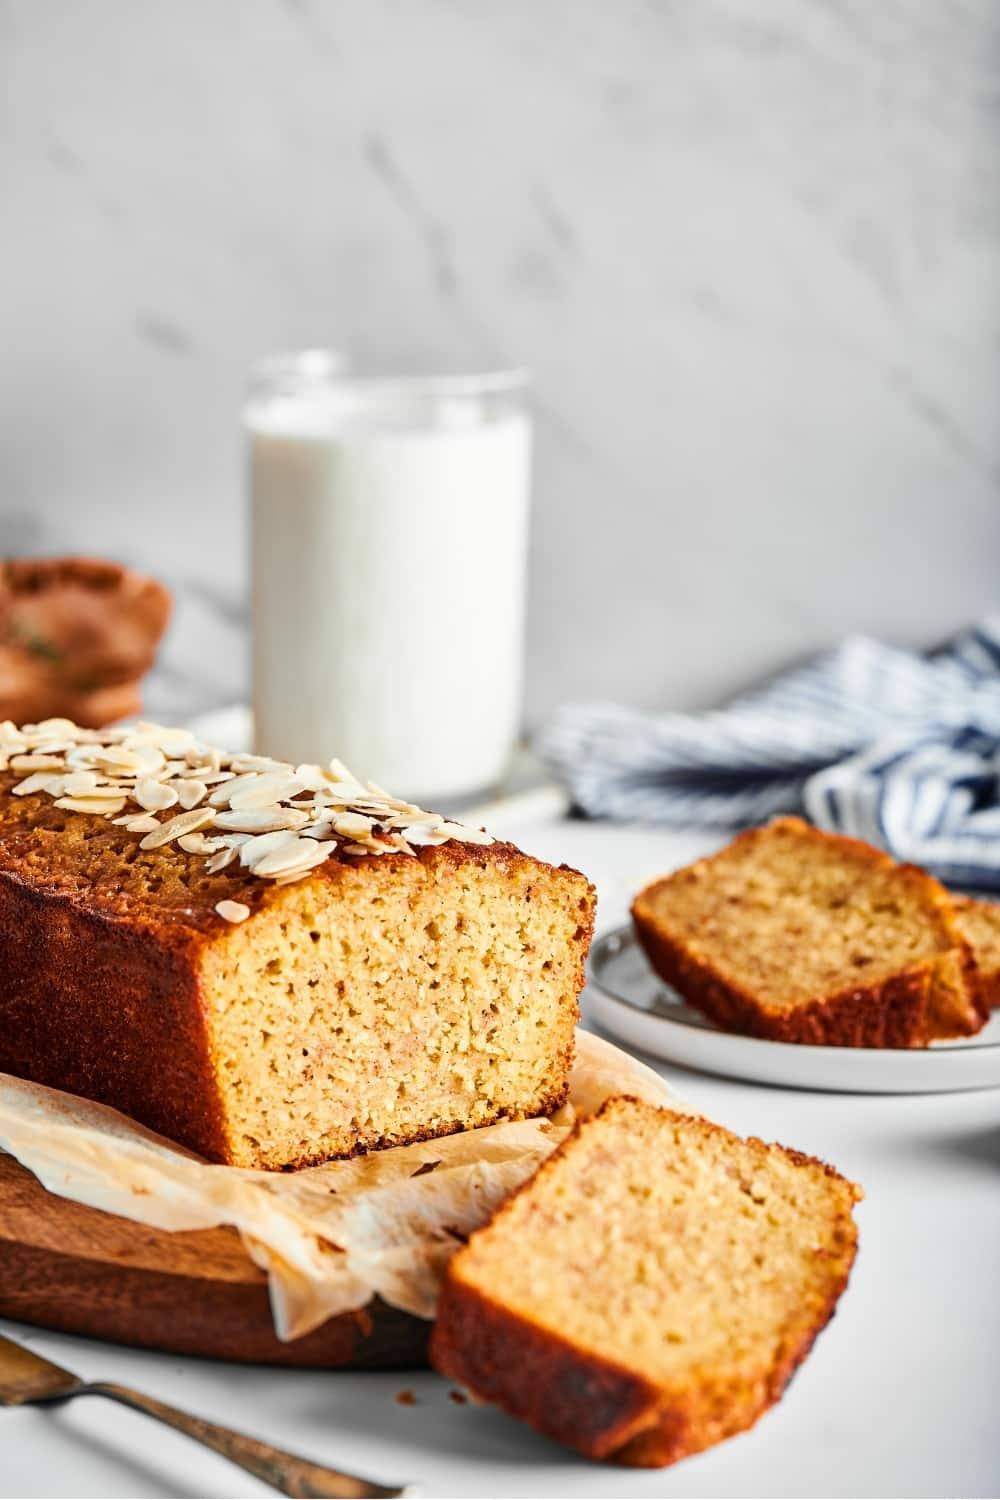 Part of a loaf of banana bread and a piece of white parchment paper on a wooden cutting board. A slice of banana bread is cut out and it is lying face down in front of the cutting Board. Behind the low is a glass of milk and a white plate with a slice of banana bread on it.